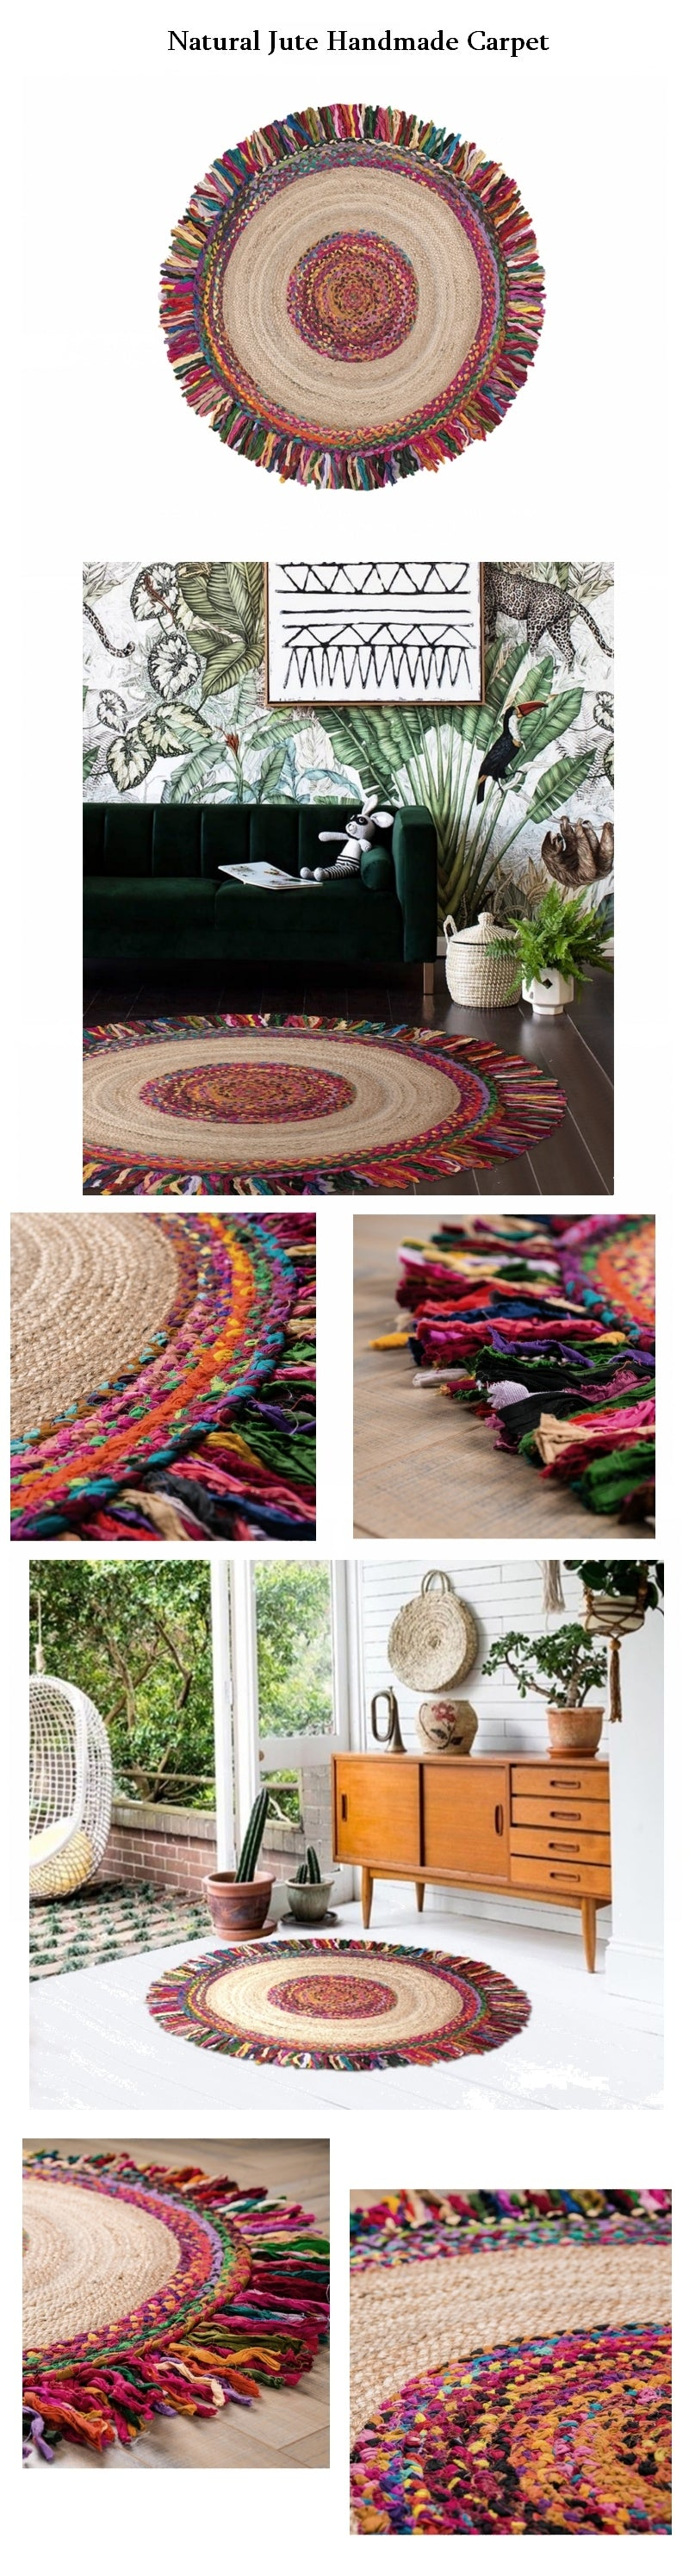 100% Handmade Jute Carpet, India Oriental Floor Carpet, Round Floor Carpet and Area Rug